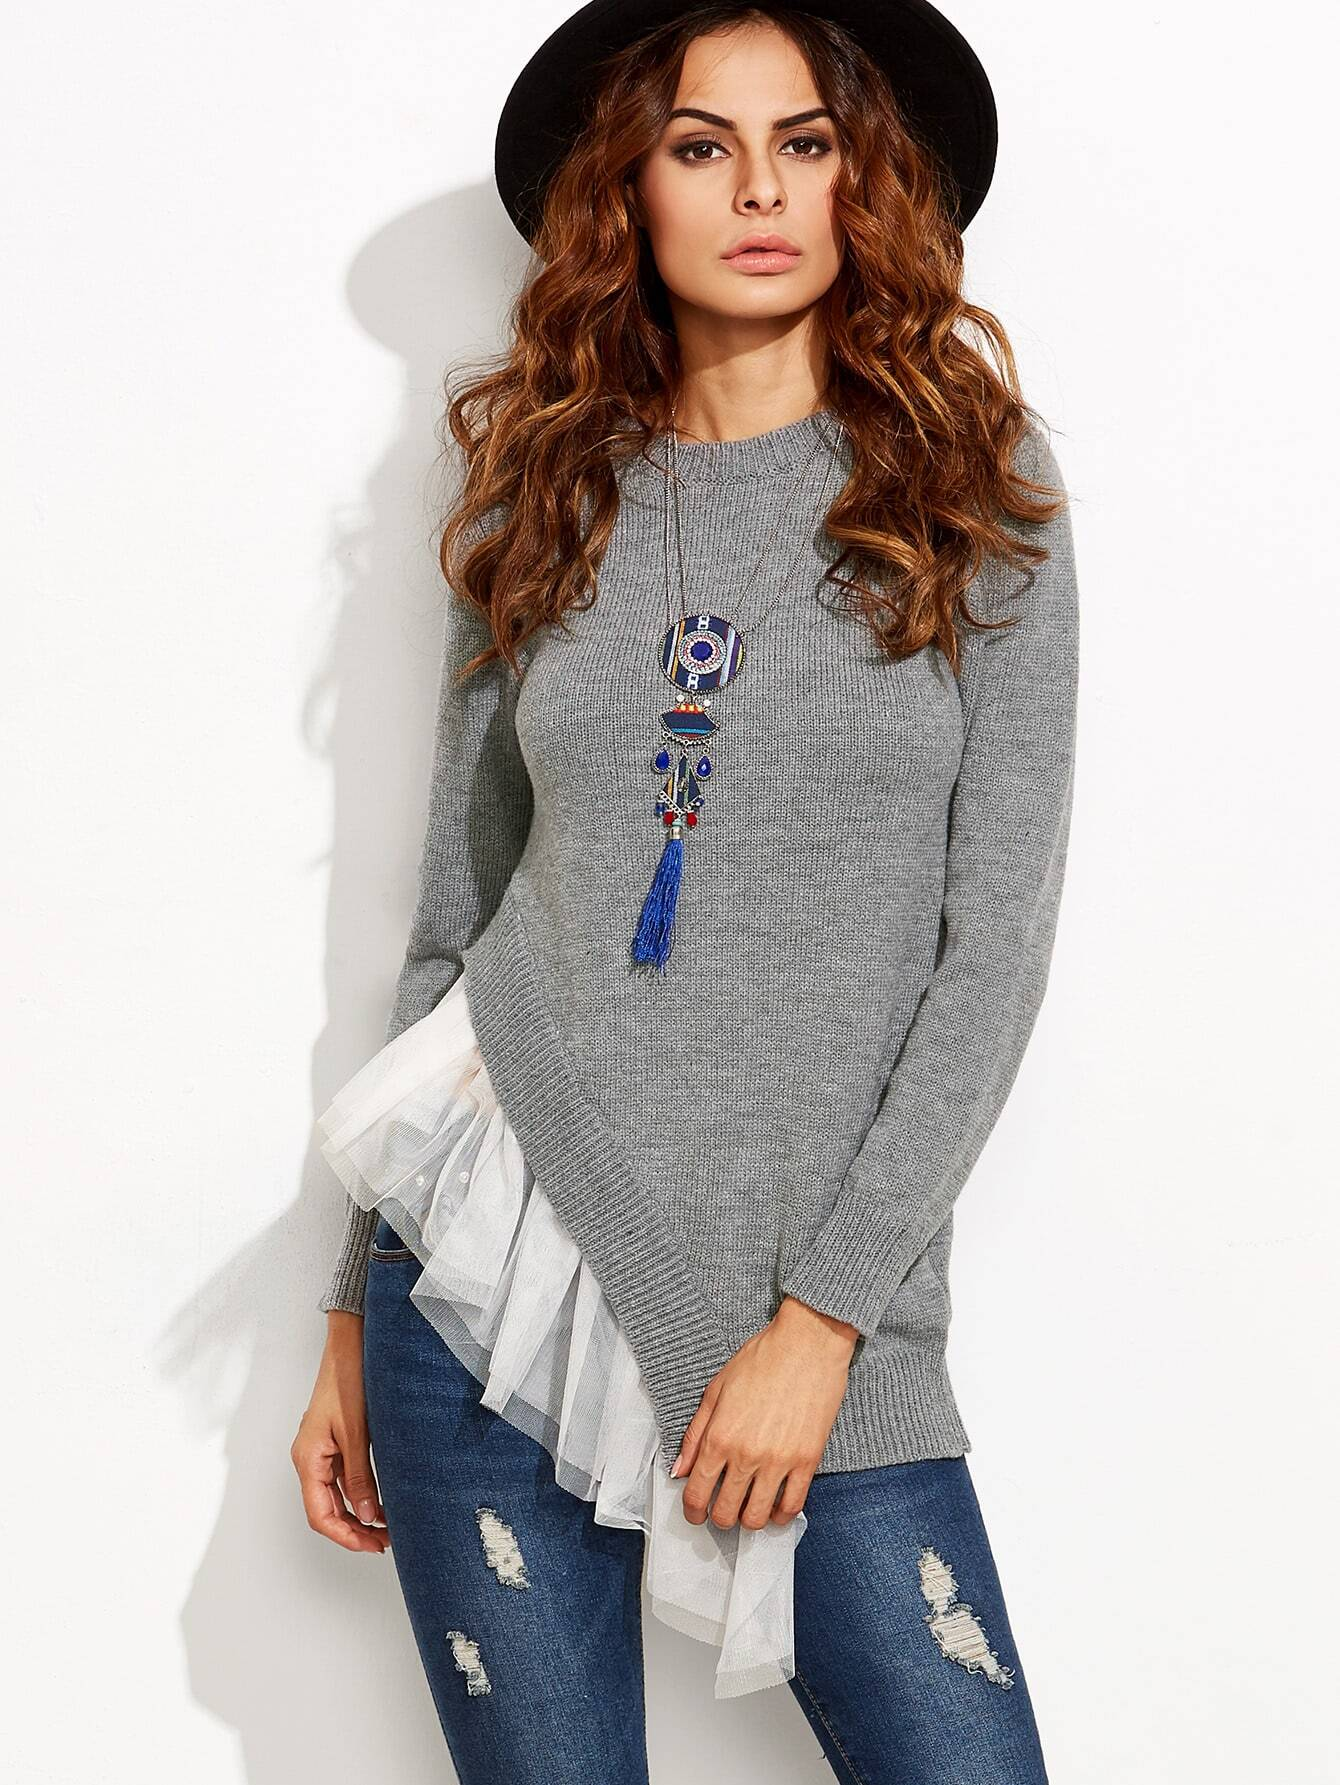 Grey Contrast Mesh Trim Asymmetric Pullover Sweater sweater160811706